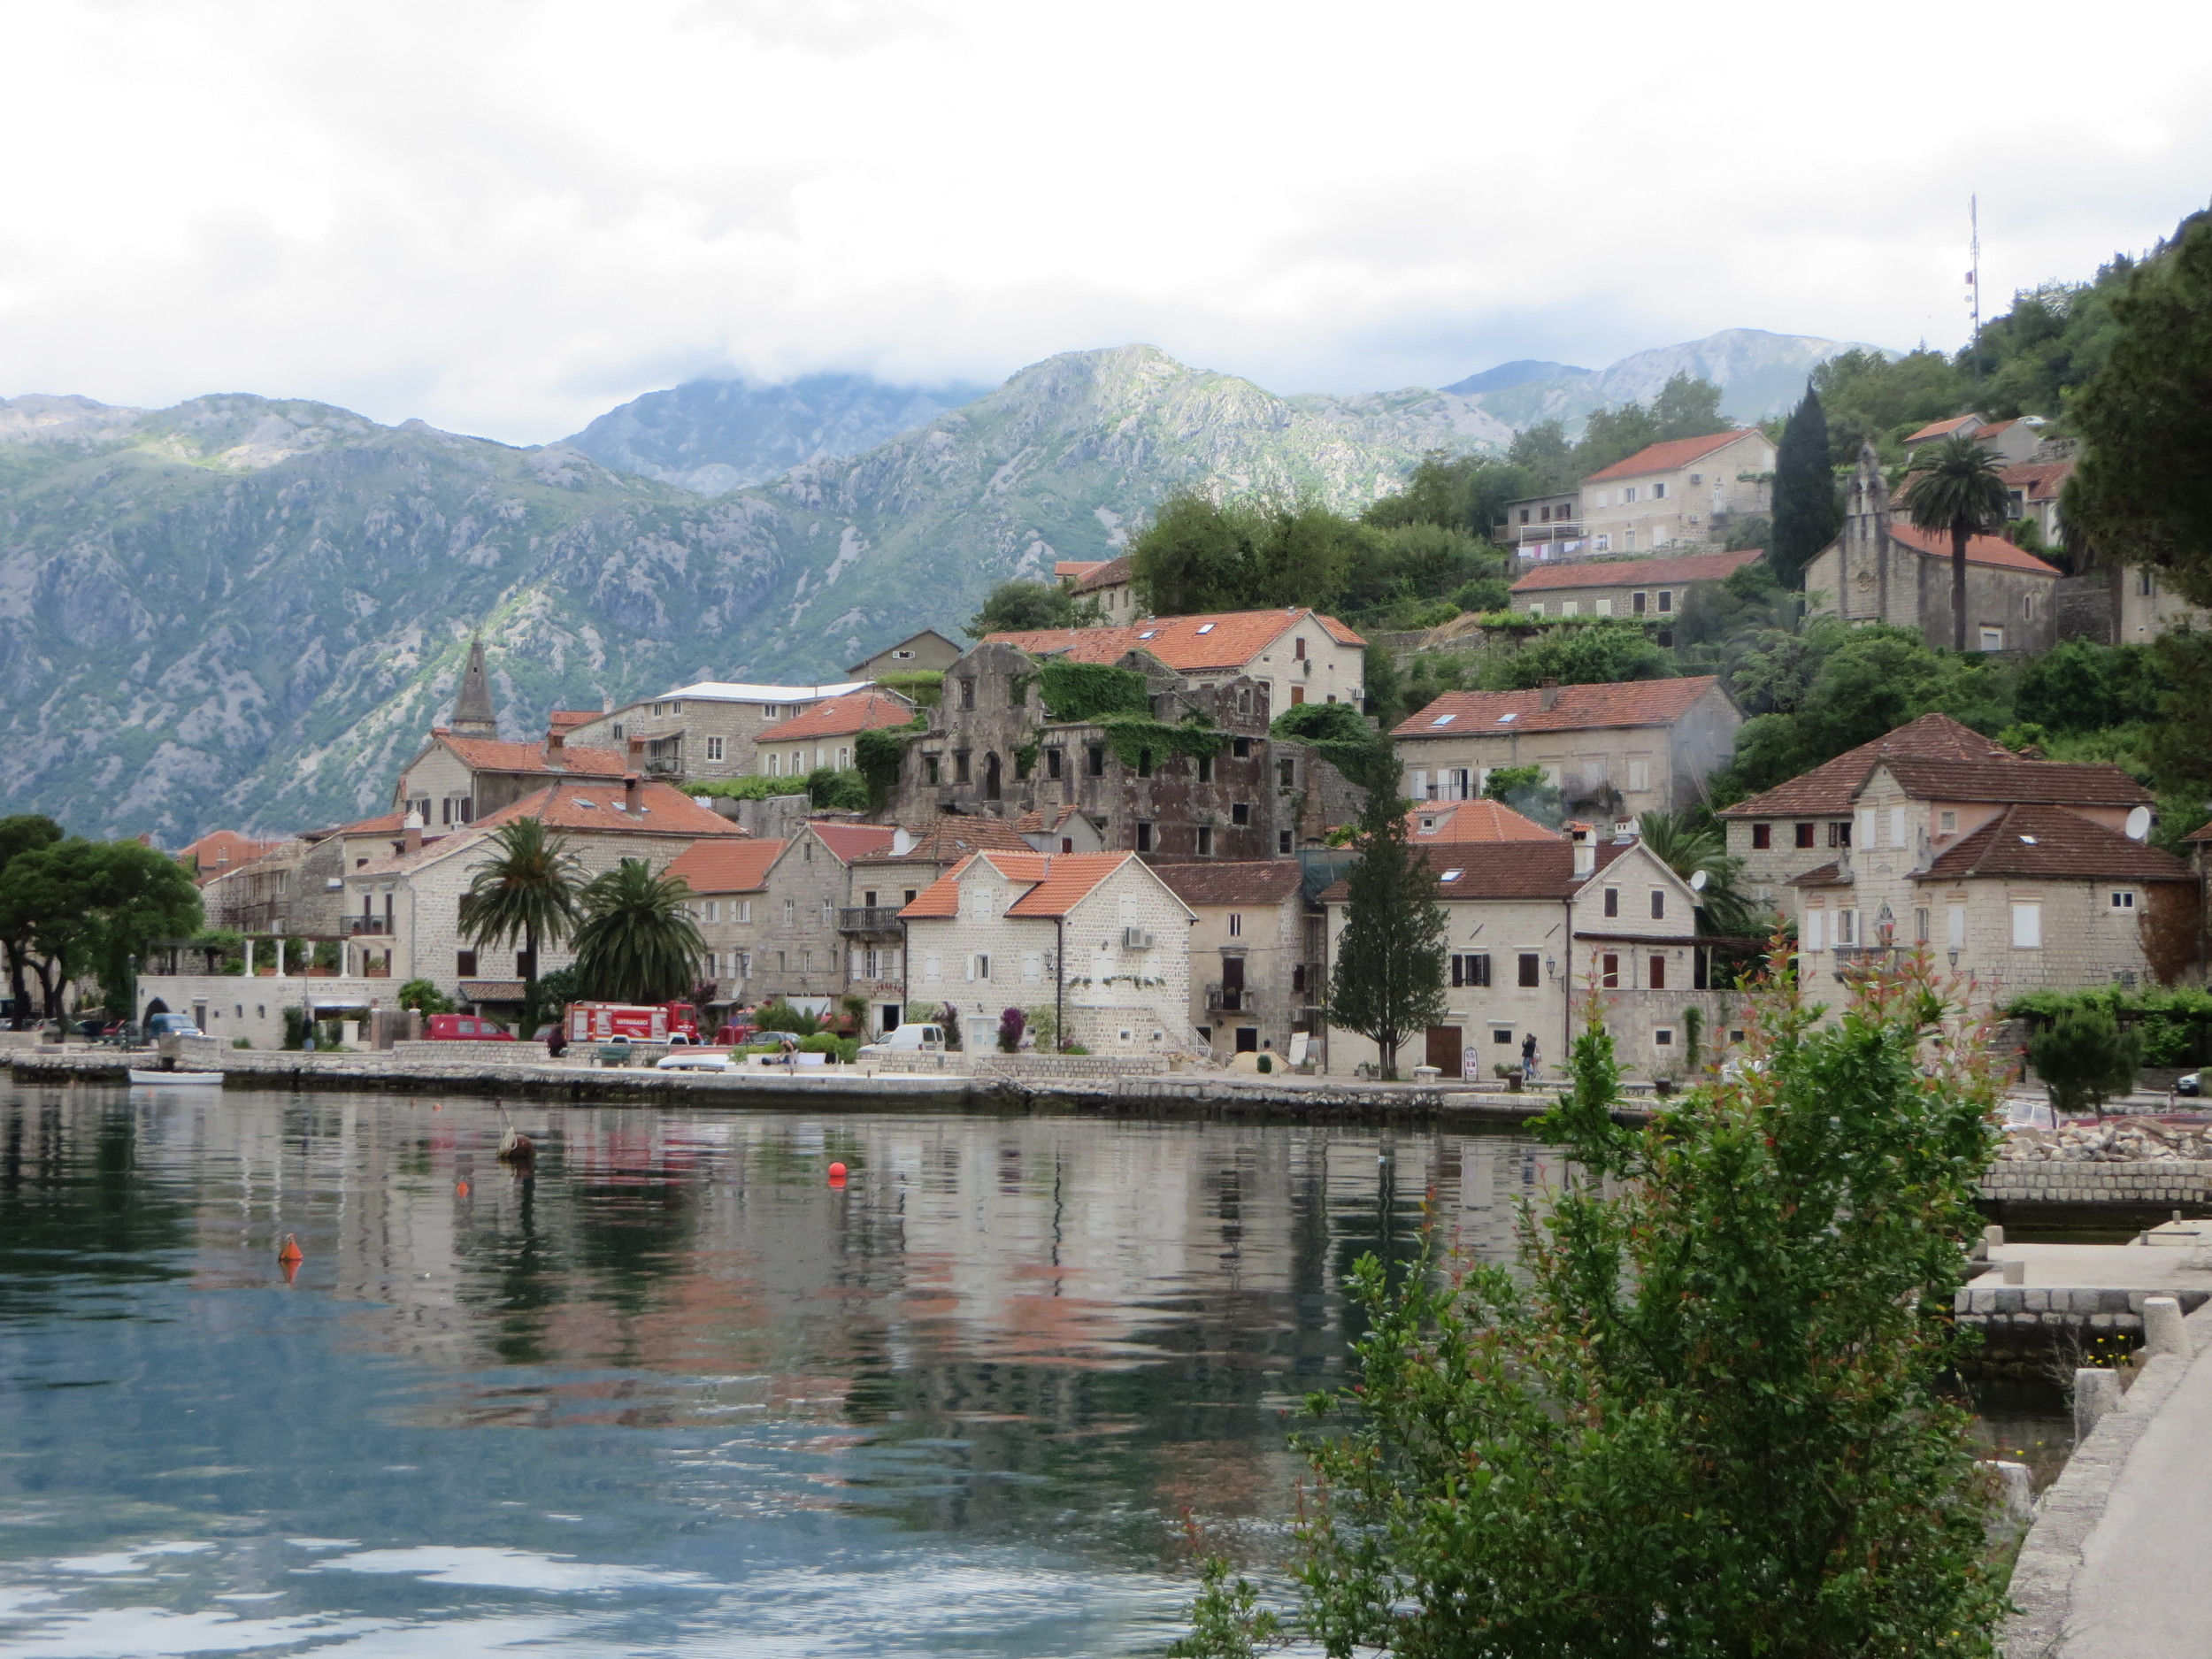 Perast, Montenegro - on the beautiful Bay of Kotor, the second largest fjord in Europe.